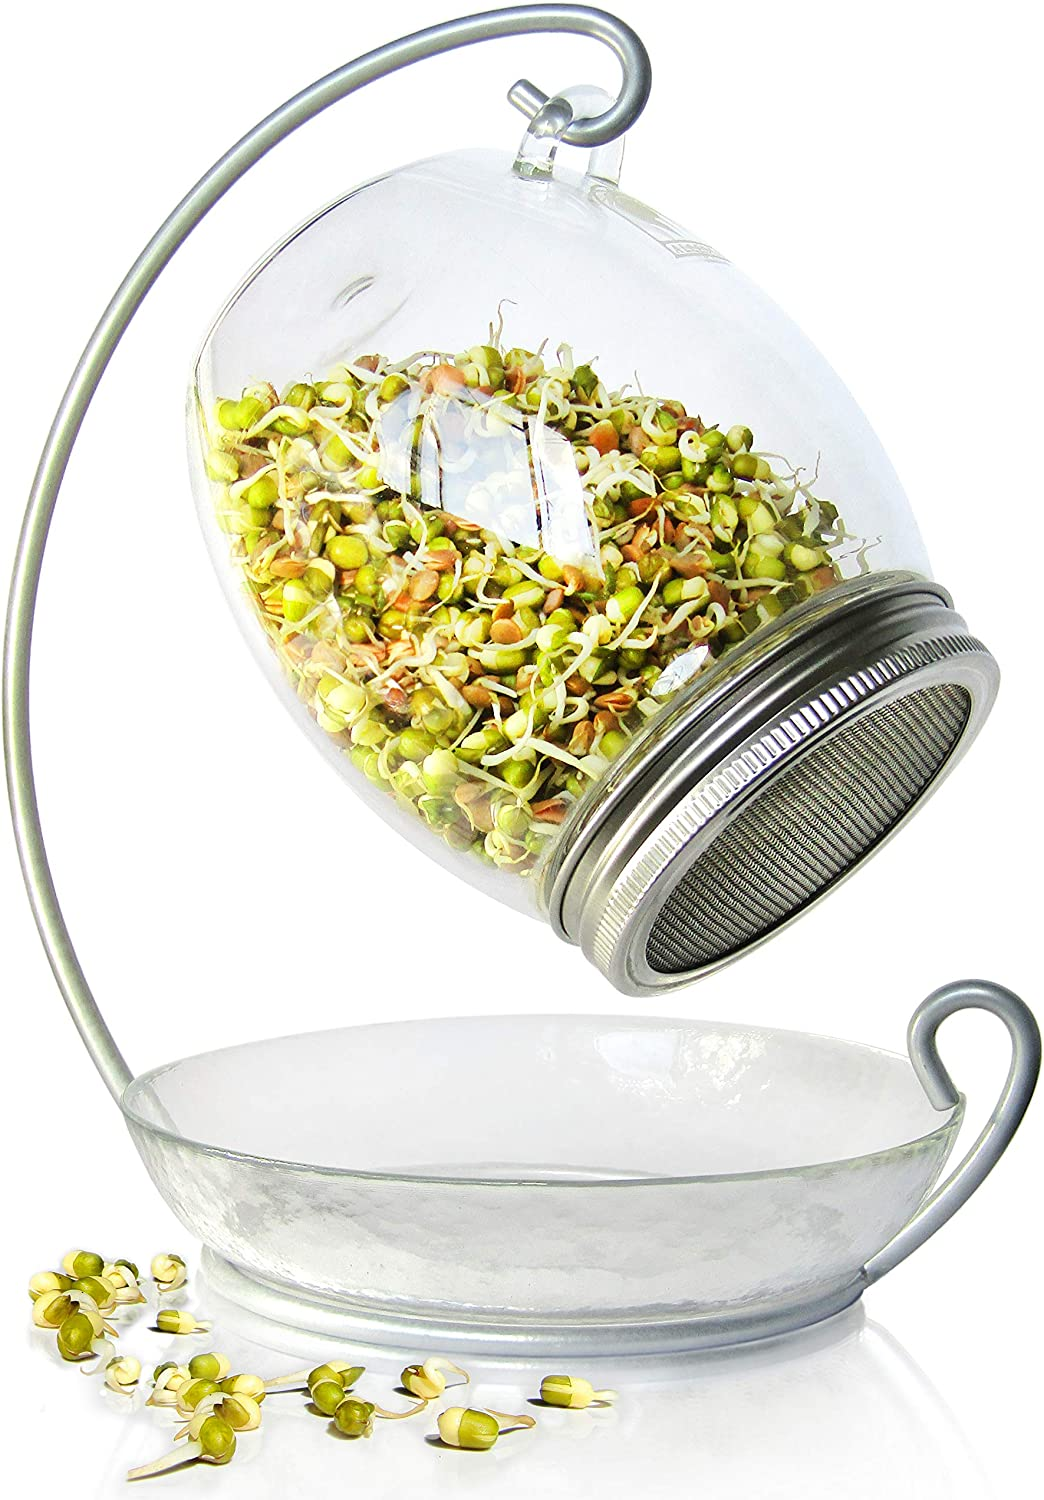 Premium Sprouting Kit Includes Unique 30 oz Wide Mouth Sprouting Jar, Stand, Tray and Sprouting Lid Decorative Indoor Seed Sprouter and Germinator 1 Kit